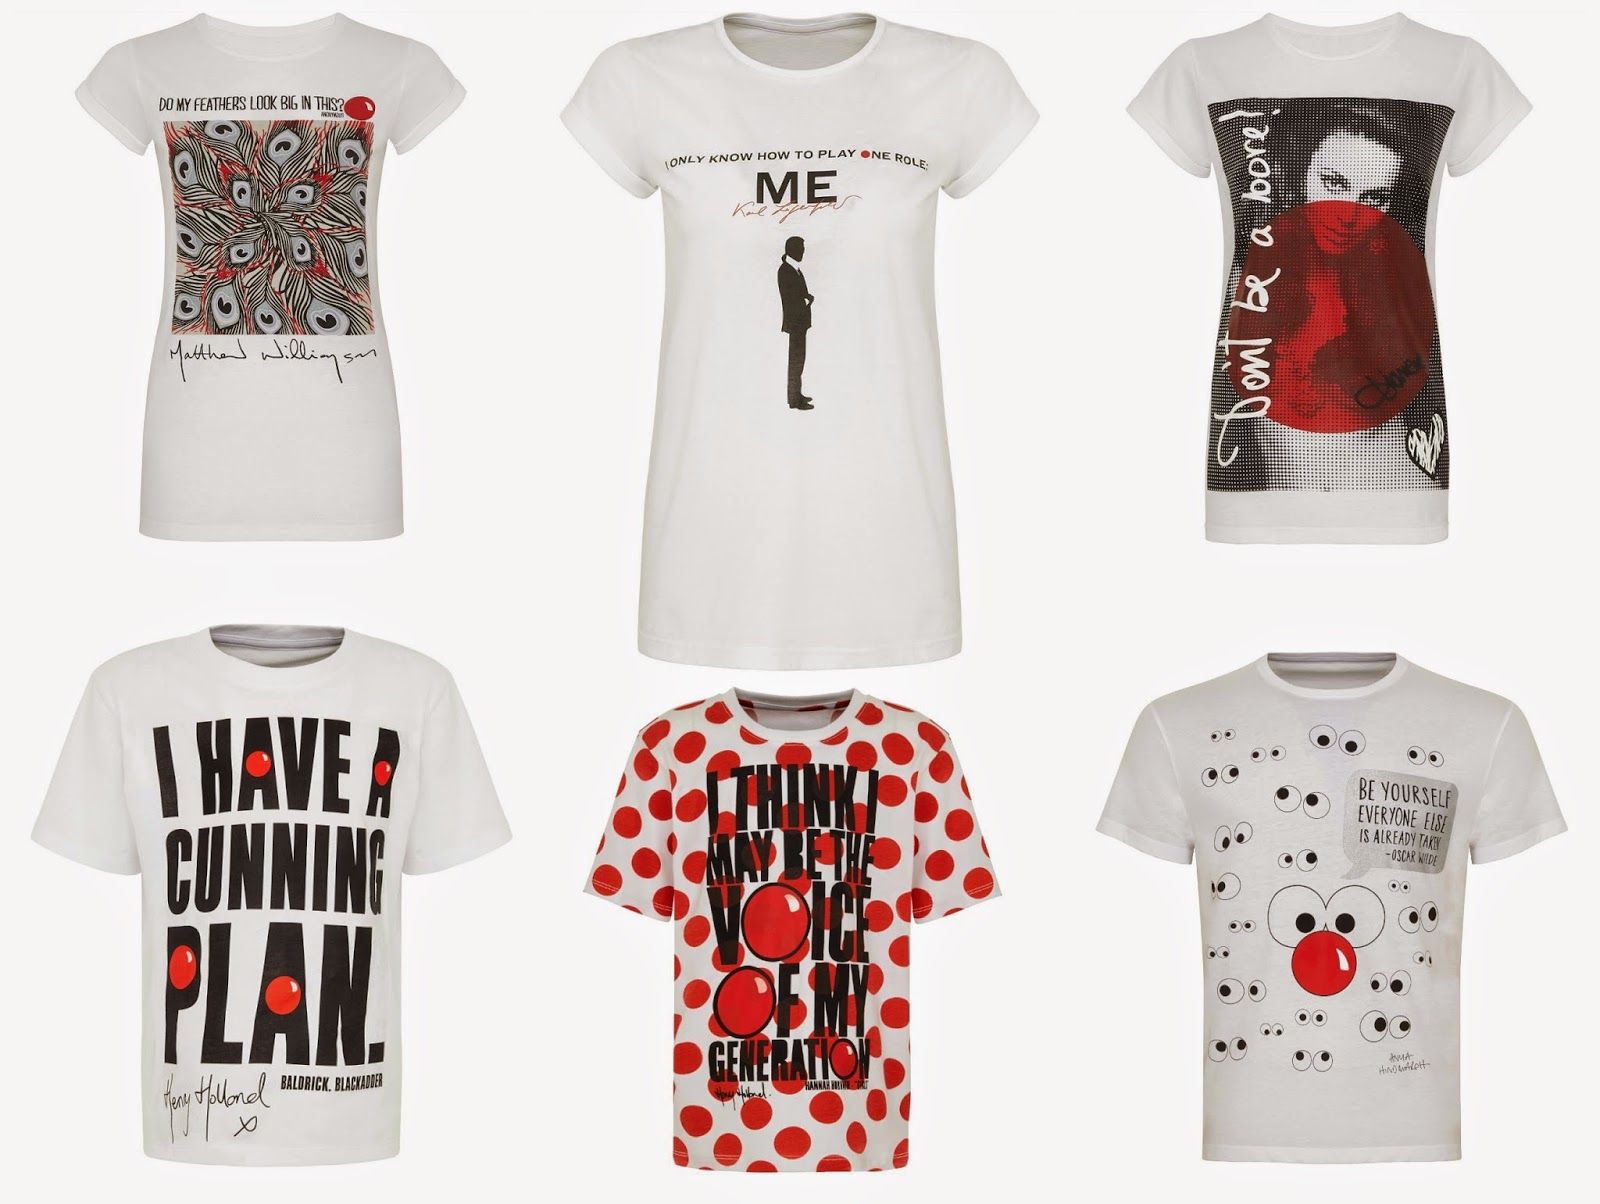 mamasVIB | V. I. BUYS: TK Maxx put the 'fashion' into Red Nose Day to support Comic Relief! | comic relief | red nose day | red nose | kate moss | Lily Allen | tkmaxx | designer tees | charity tees | diane von furstenburg | matthew williamson | henry holland | karl lagerfeild | anya hind march | charity | red nose t-shirts | red nose apron | tk maxx | comic relief merchandise | rimmel | red lipstick | donations | fridy the 13th | designer t-shirt for charity | fundraising | donations | charity | TKMaxx t-shirts | red nose | mamasVIb